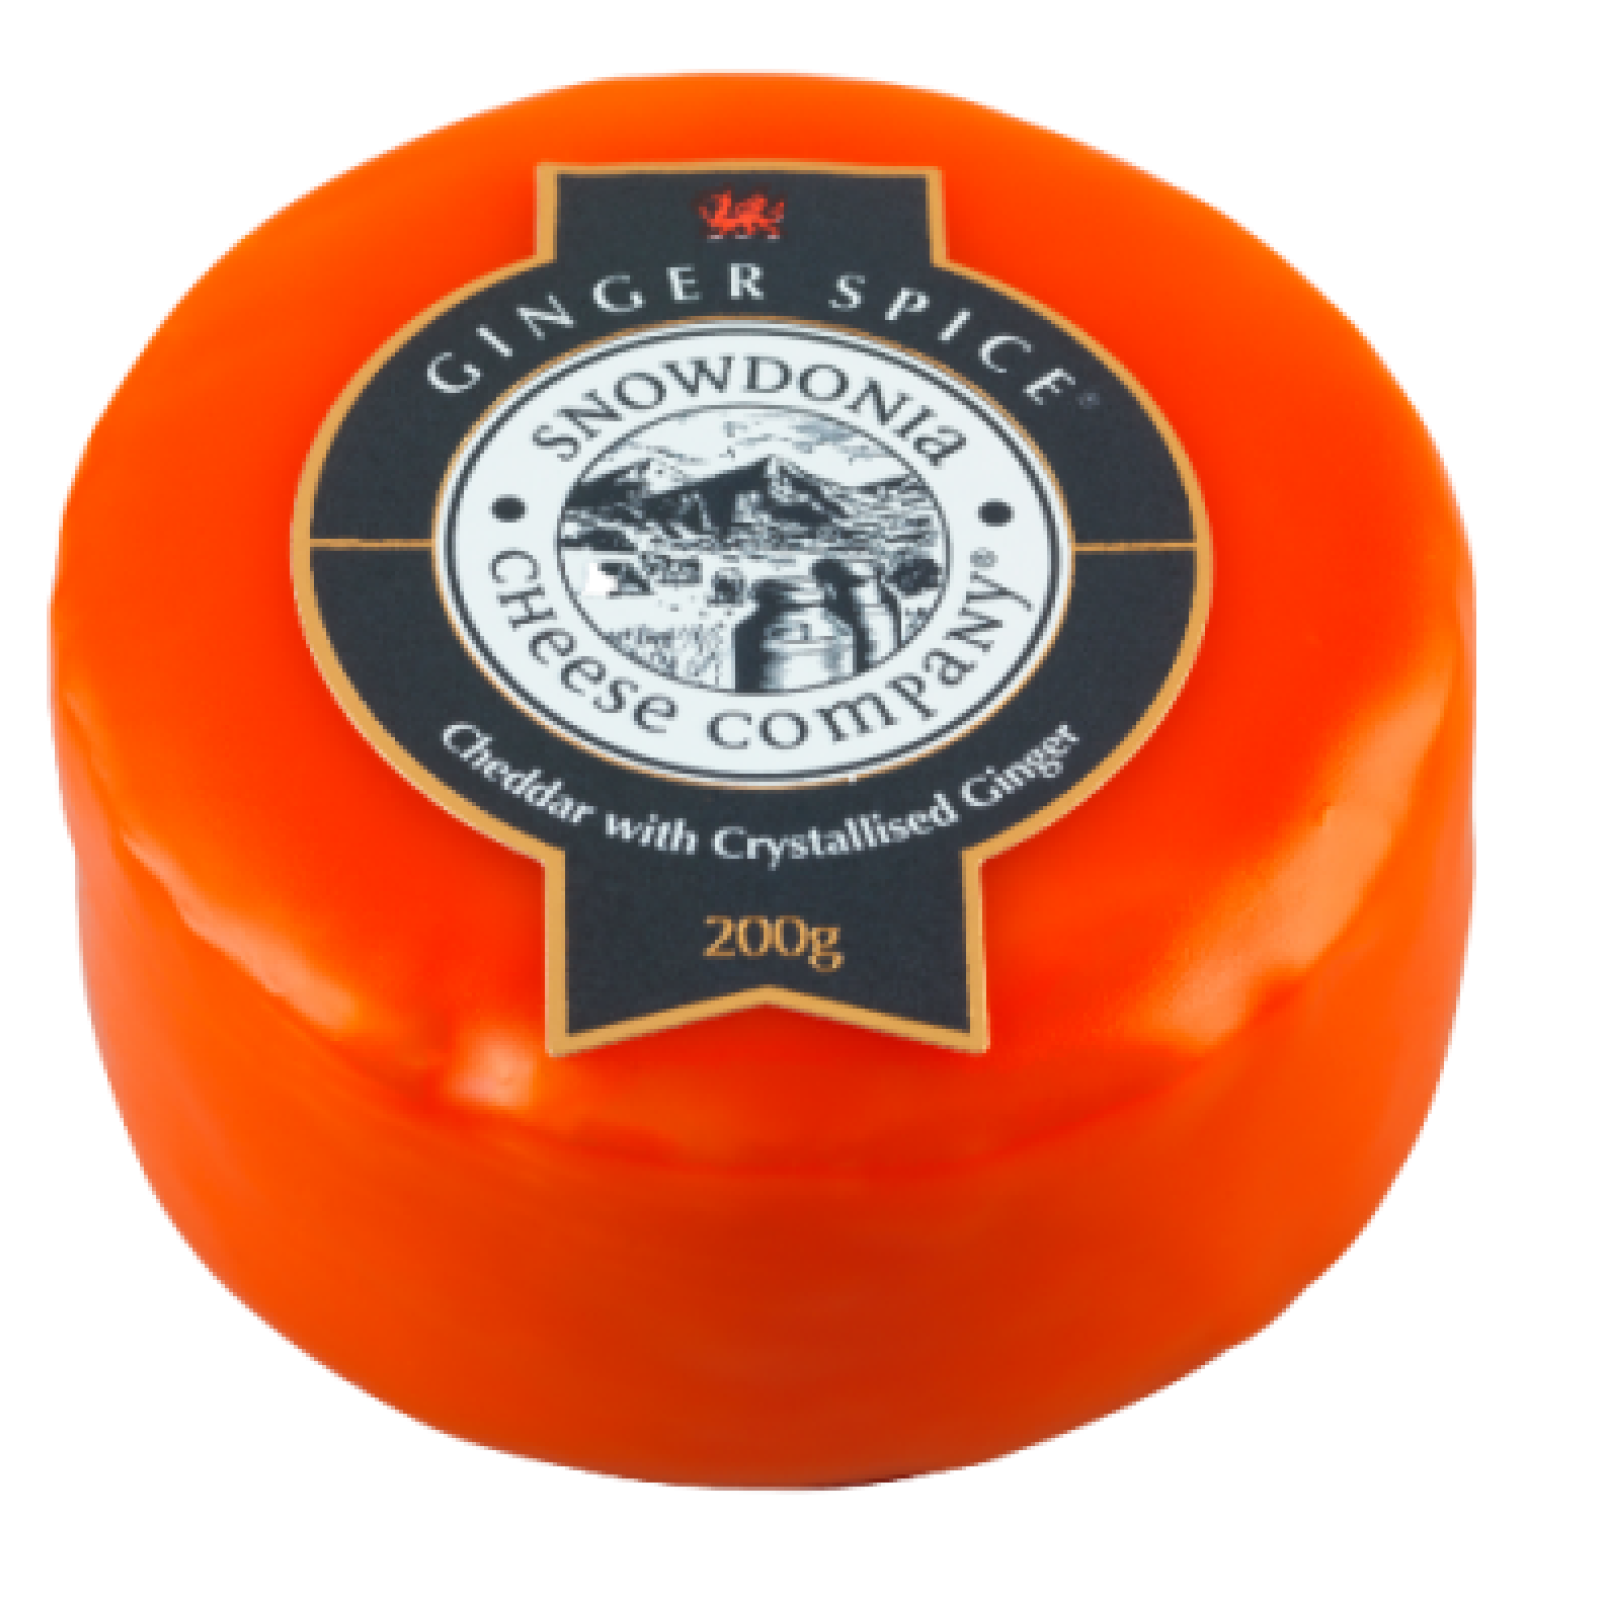 Ginger Spice 200g Cheddar with Crystallised Ginger Snowdonia Cheese Co